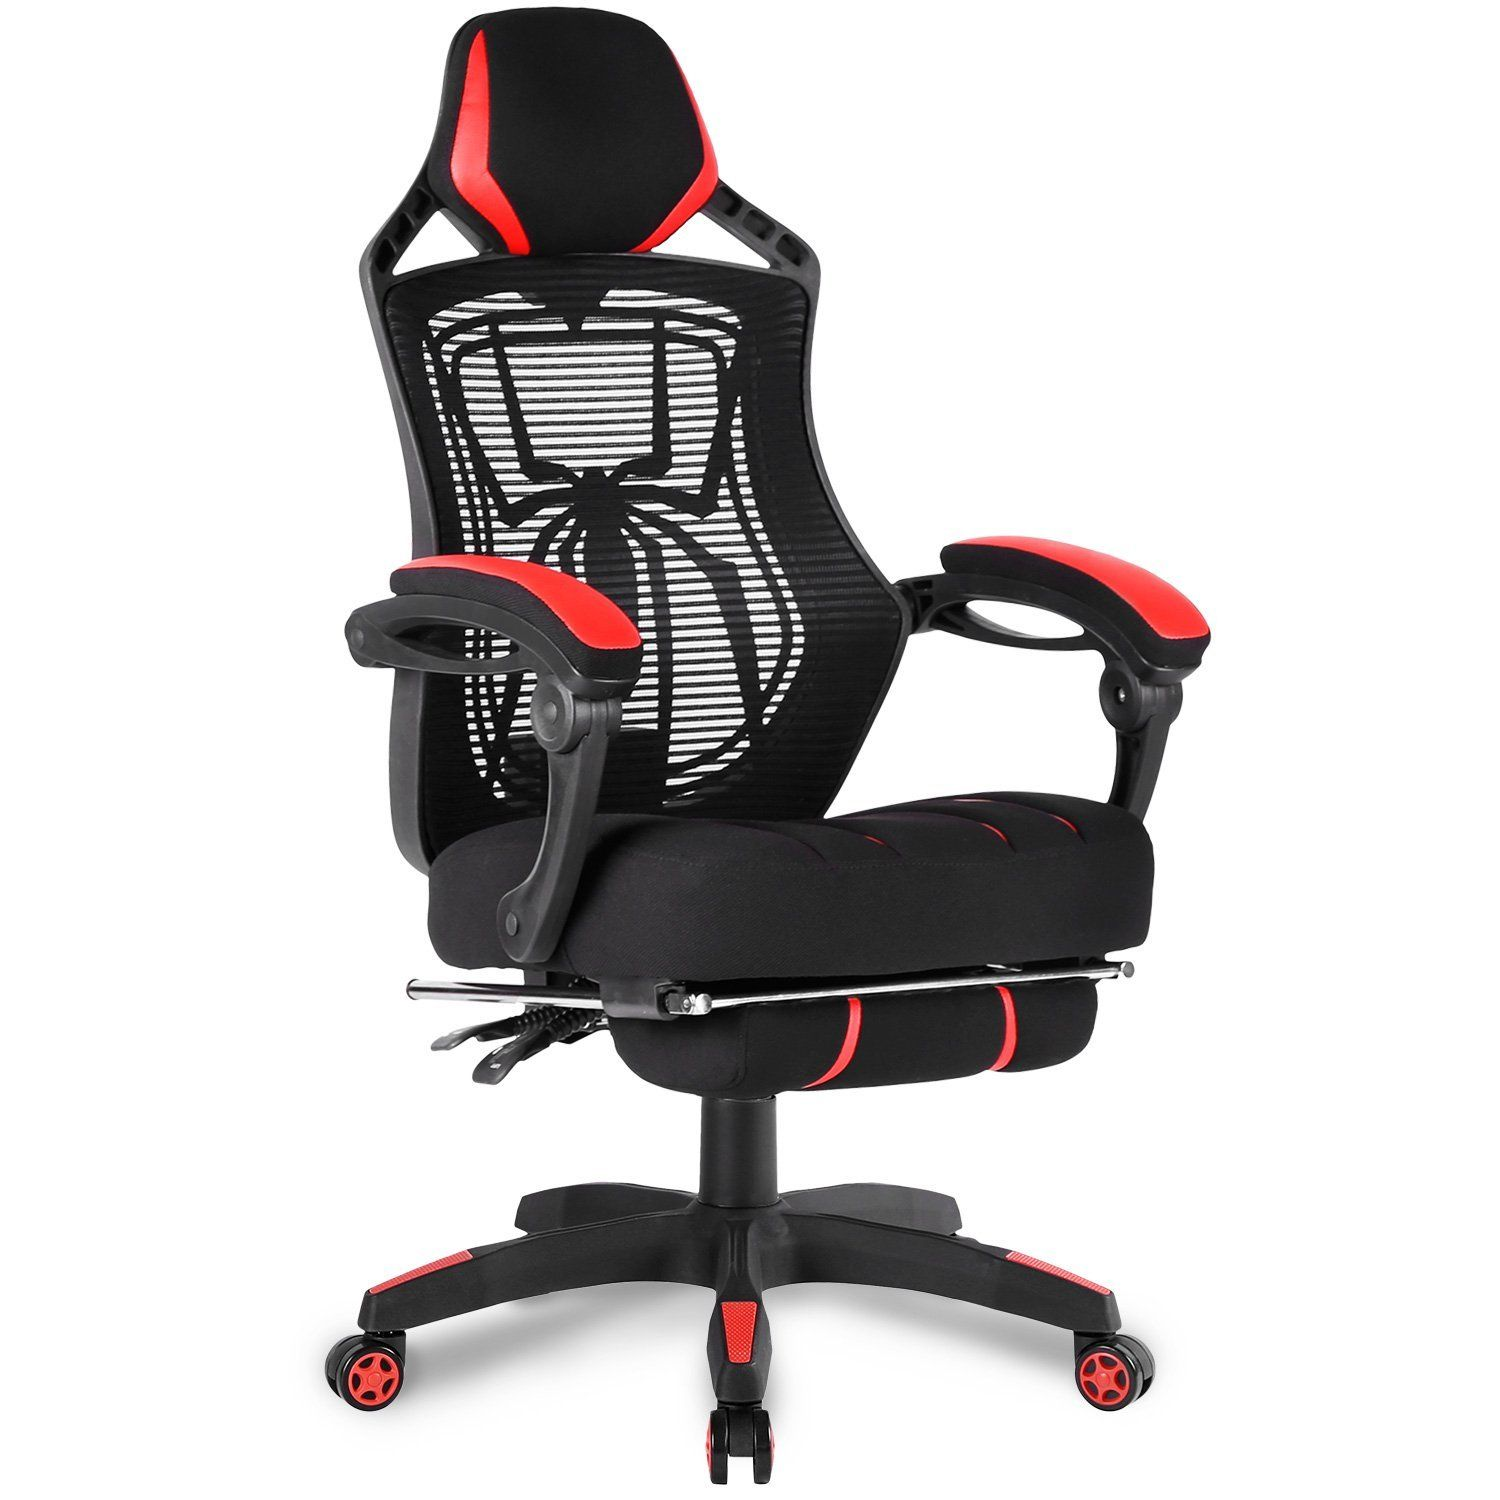 Image result for SpiderMan Gaming Chair Chair, Gaming